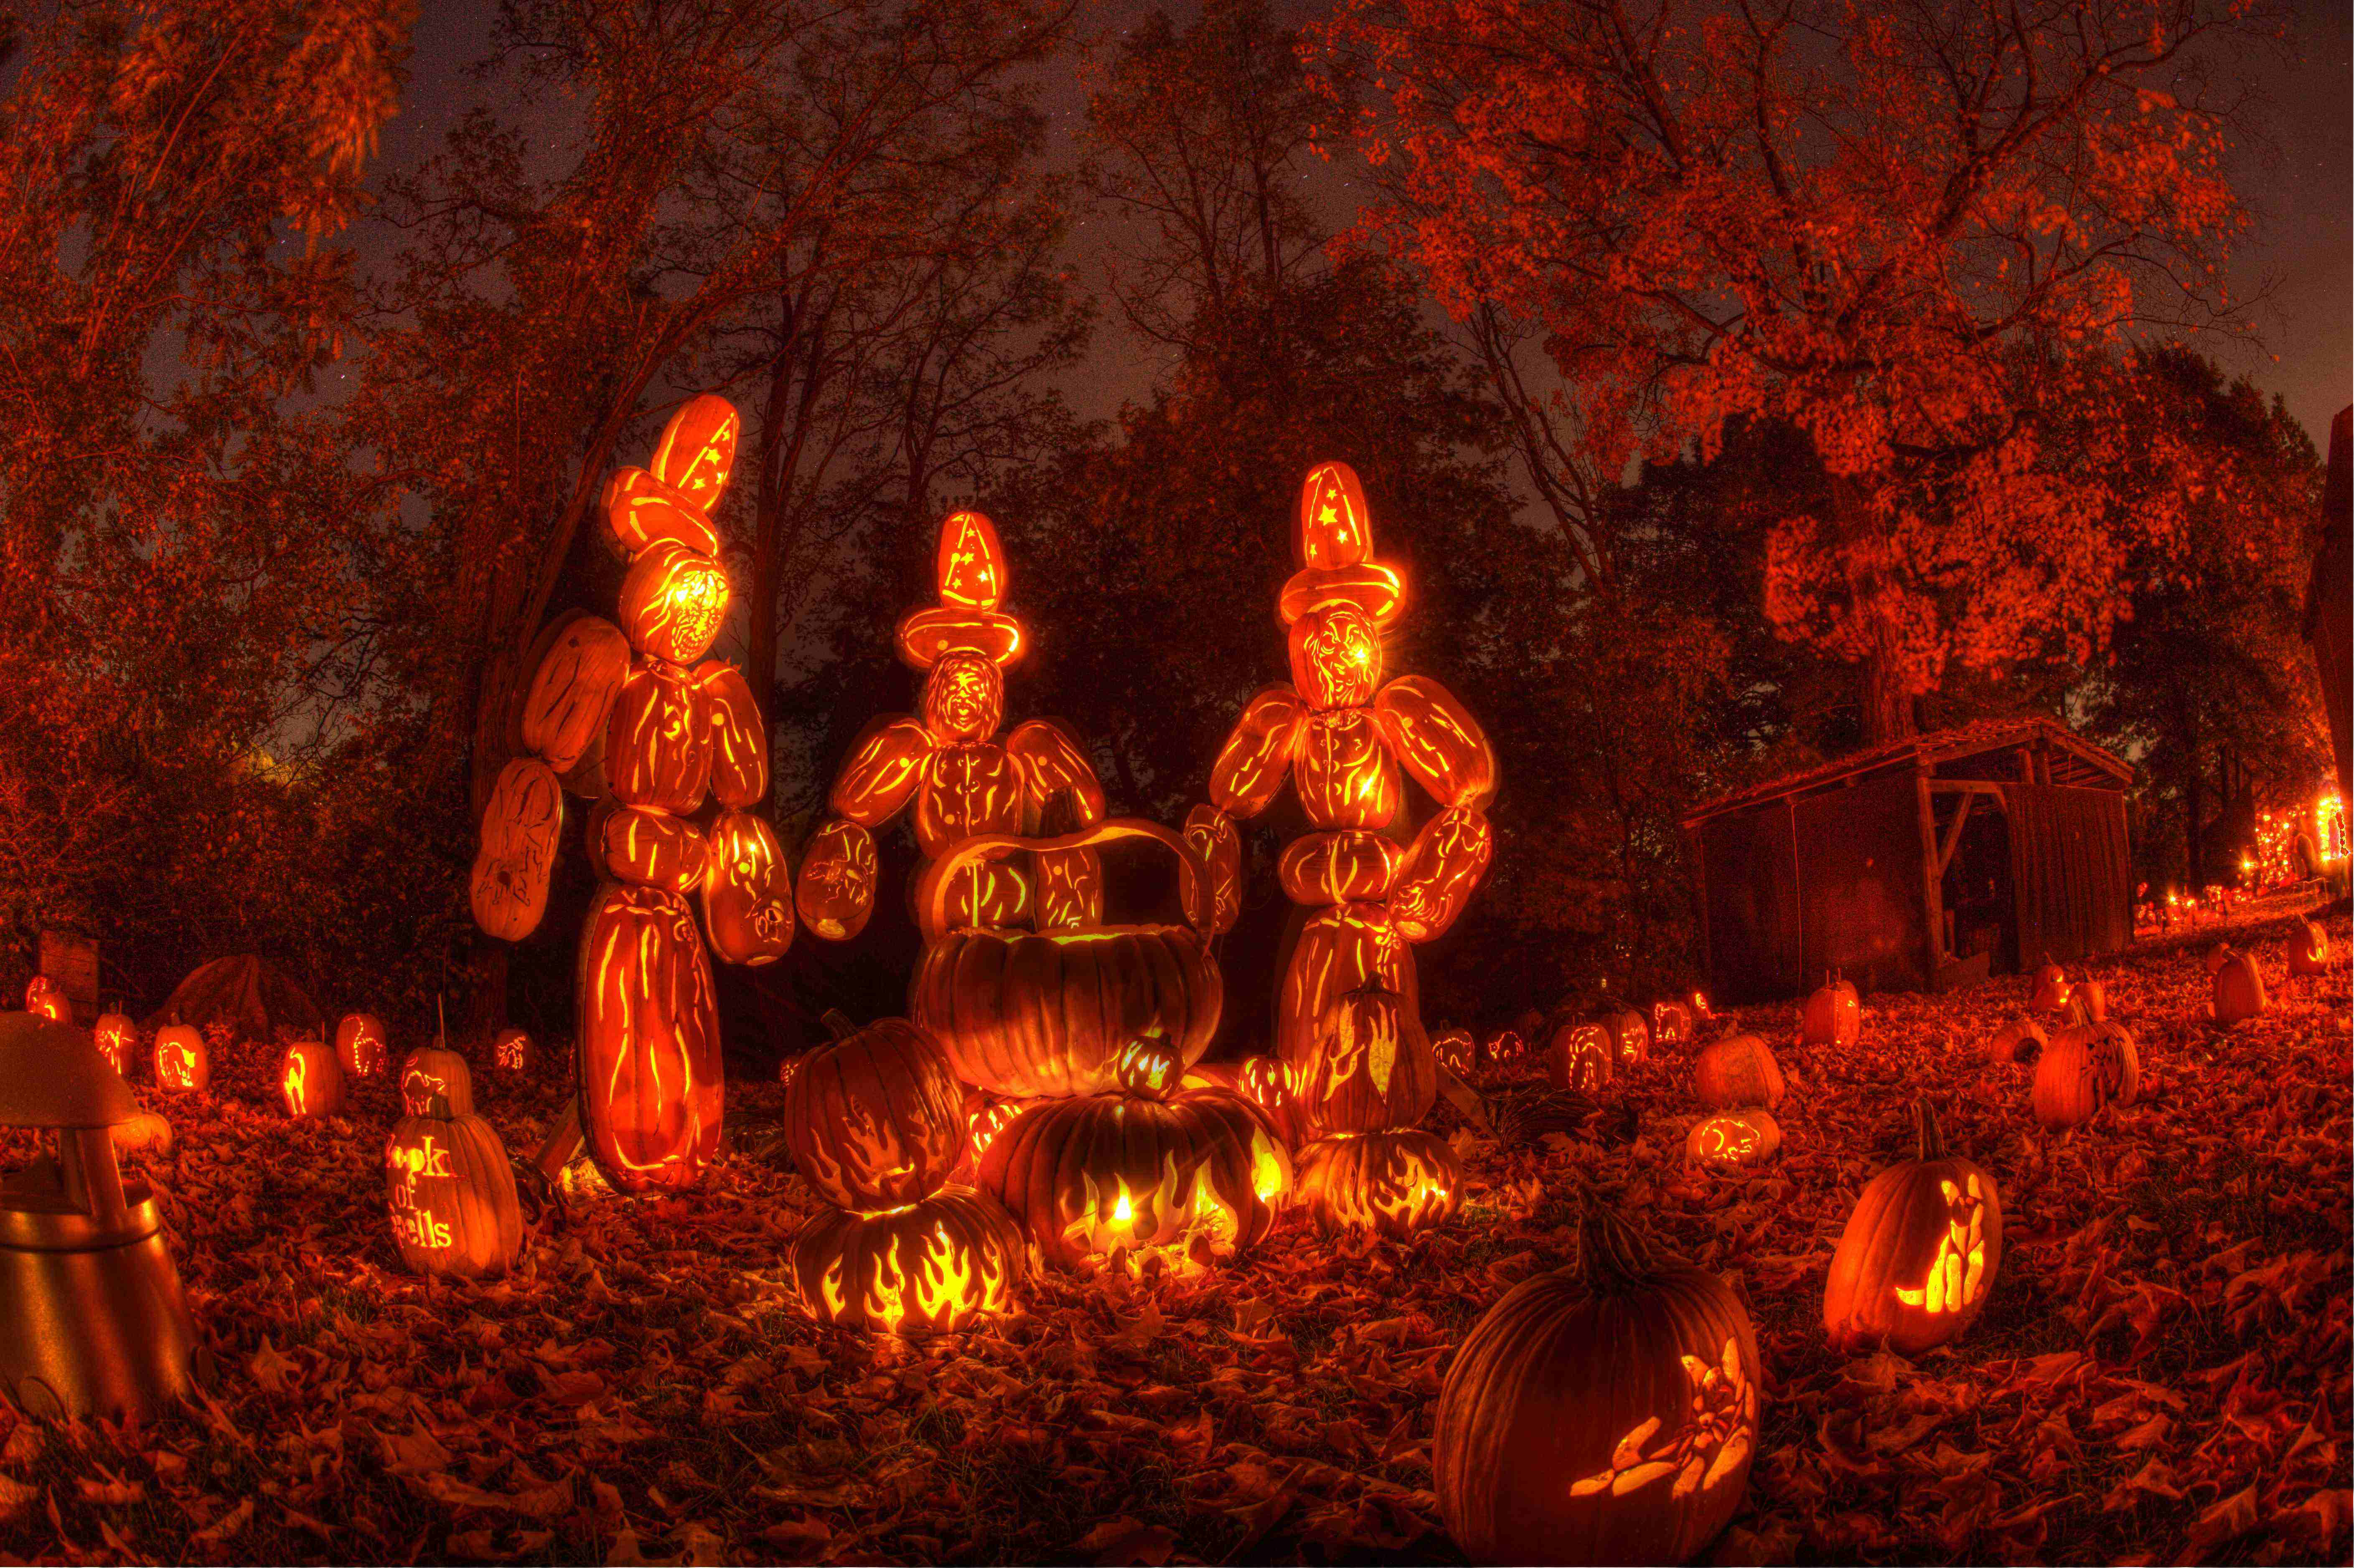 Great Jack-O-Lantern Blaze featuring Macbeth witches